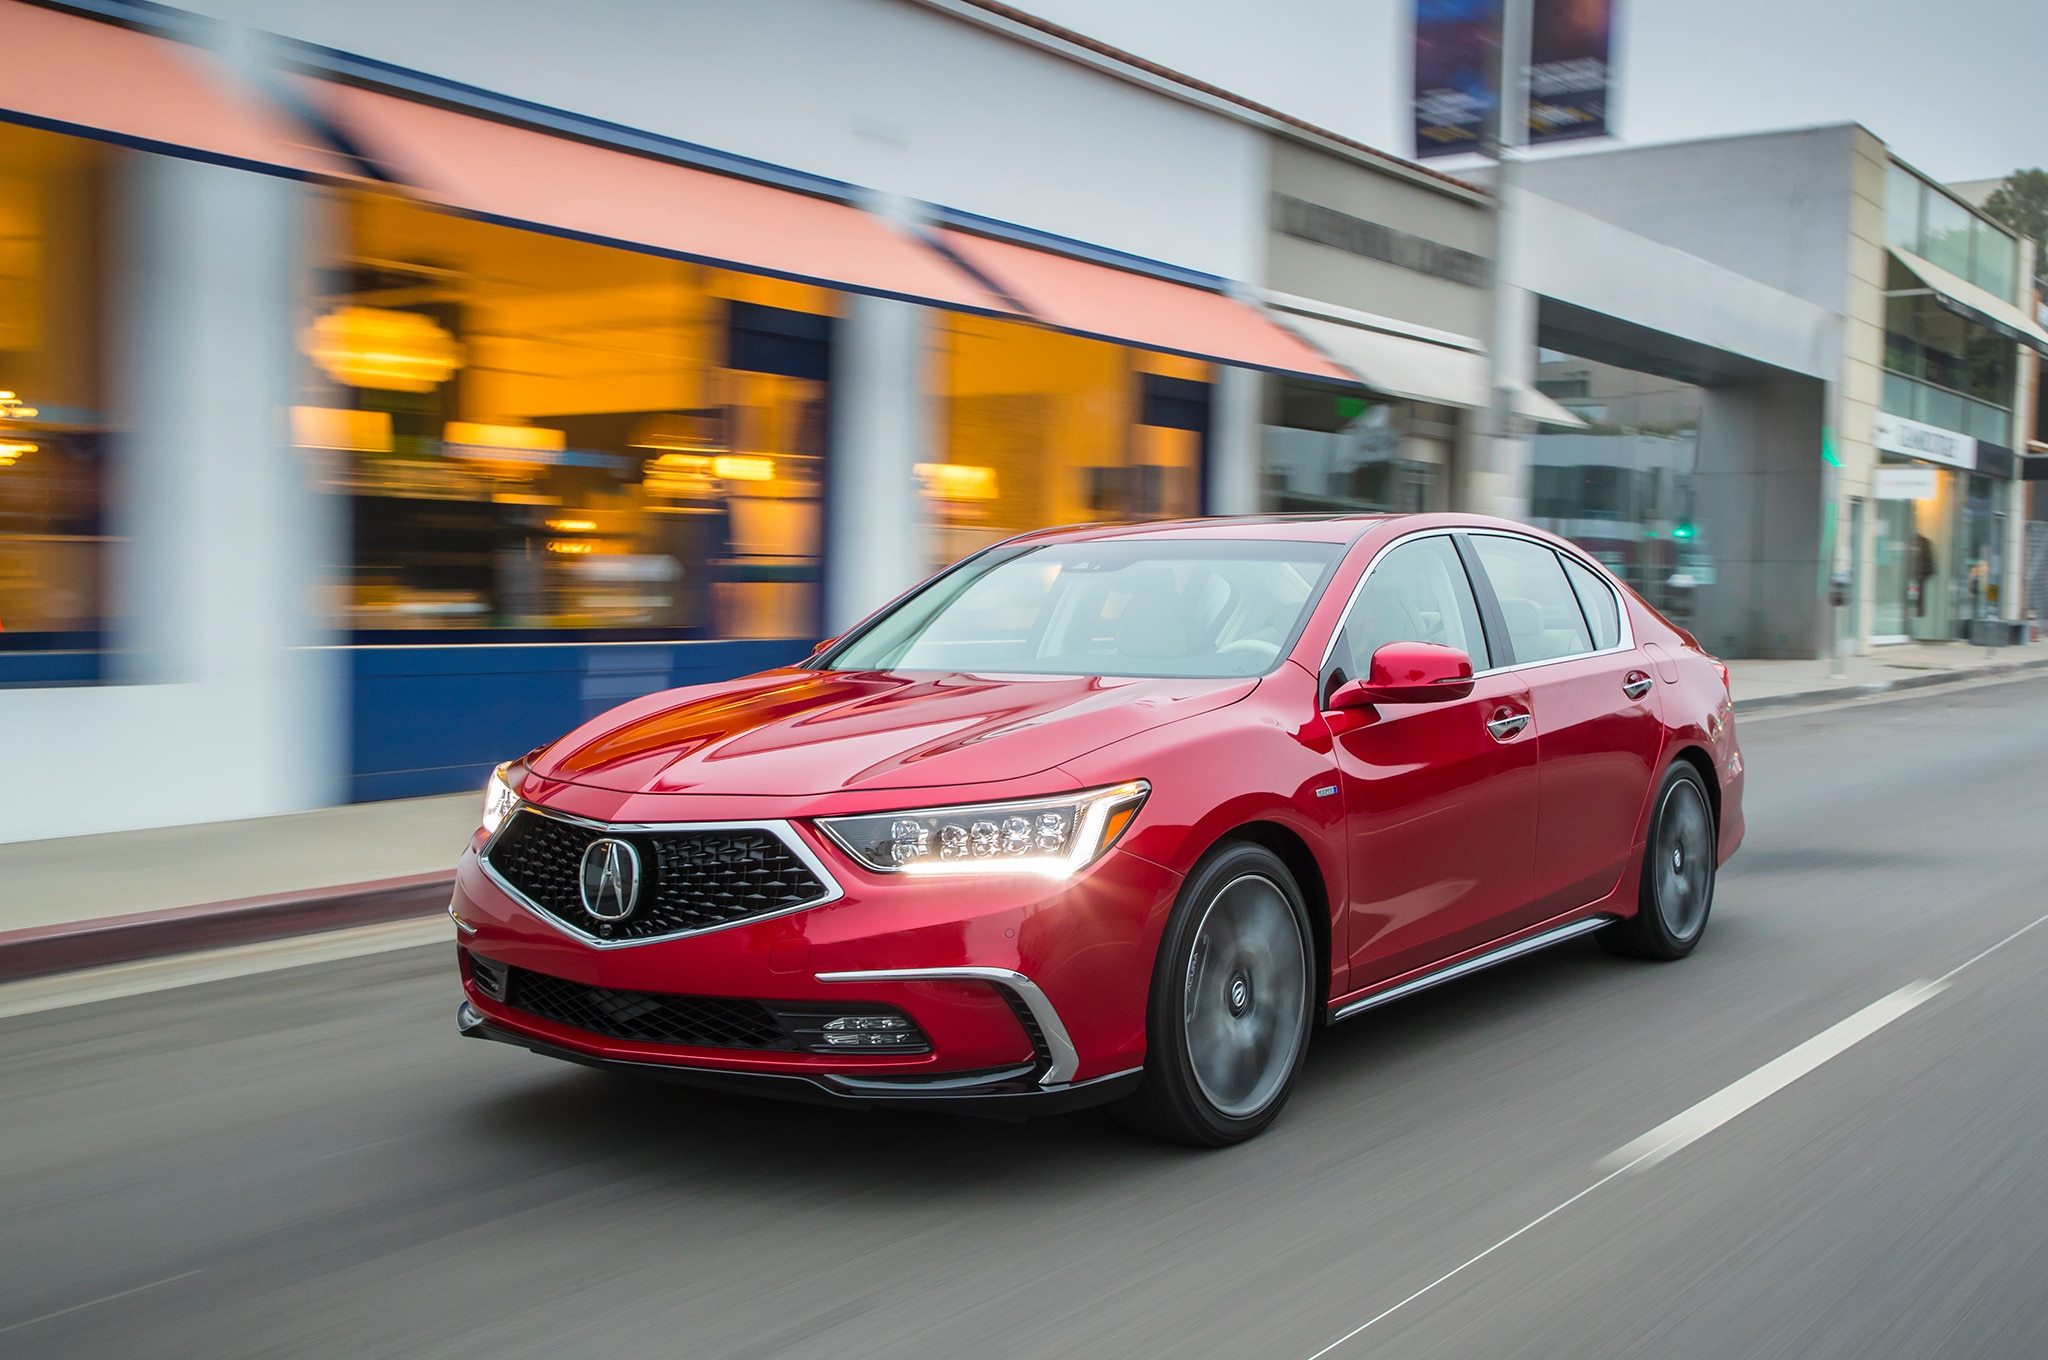 2018 Acura RLX Sport Hybrid Front Three Quarter In Motion 06